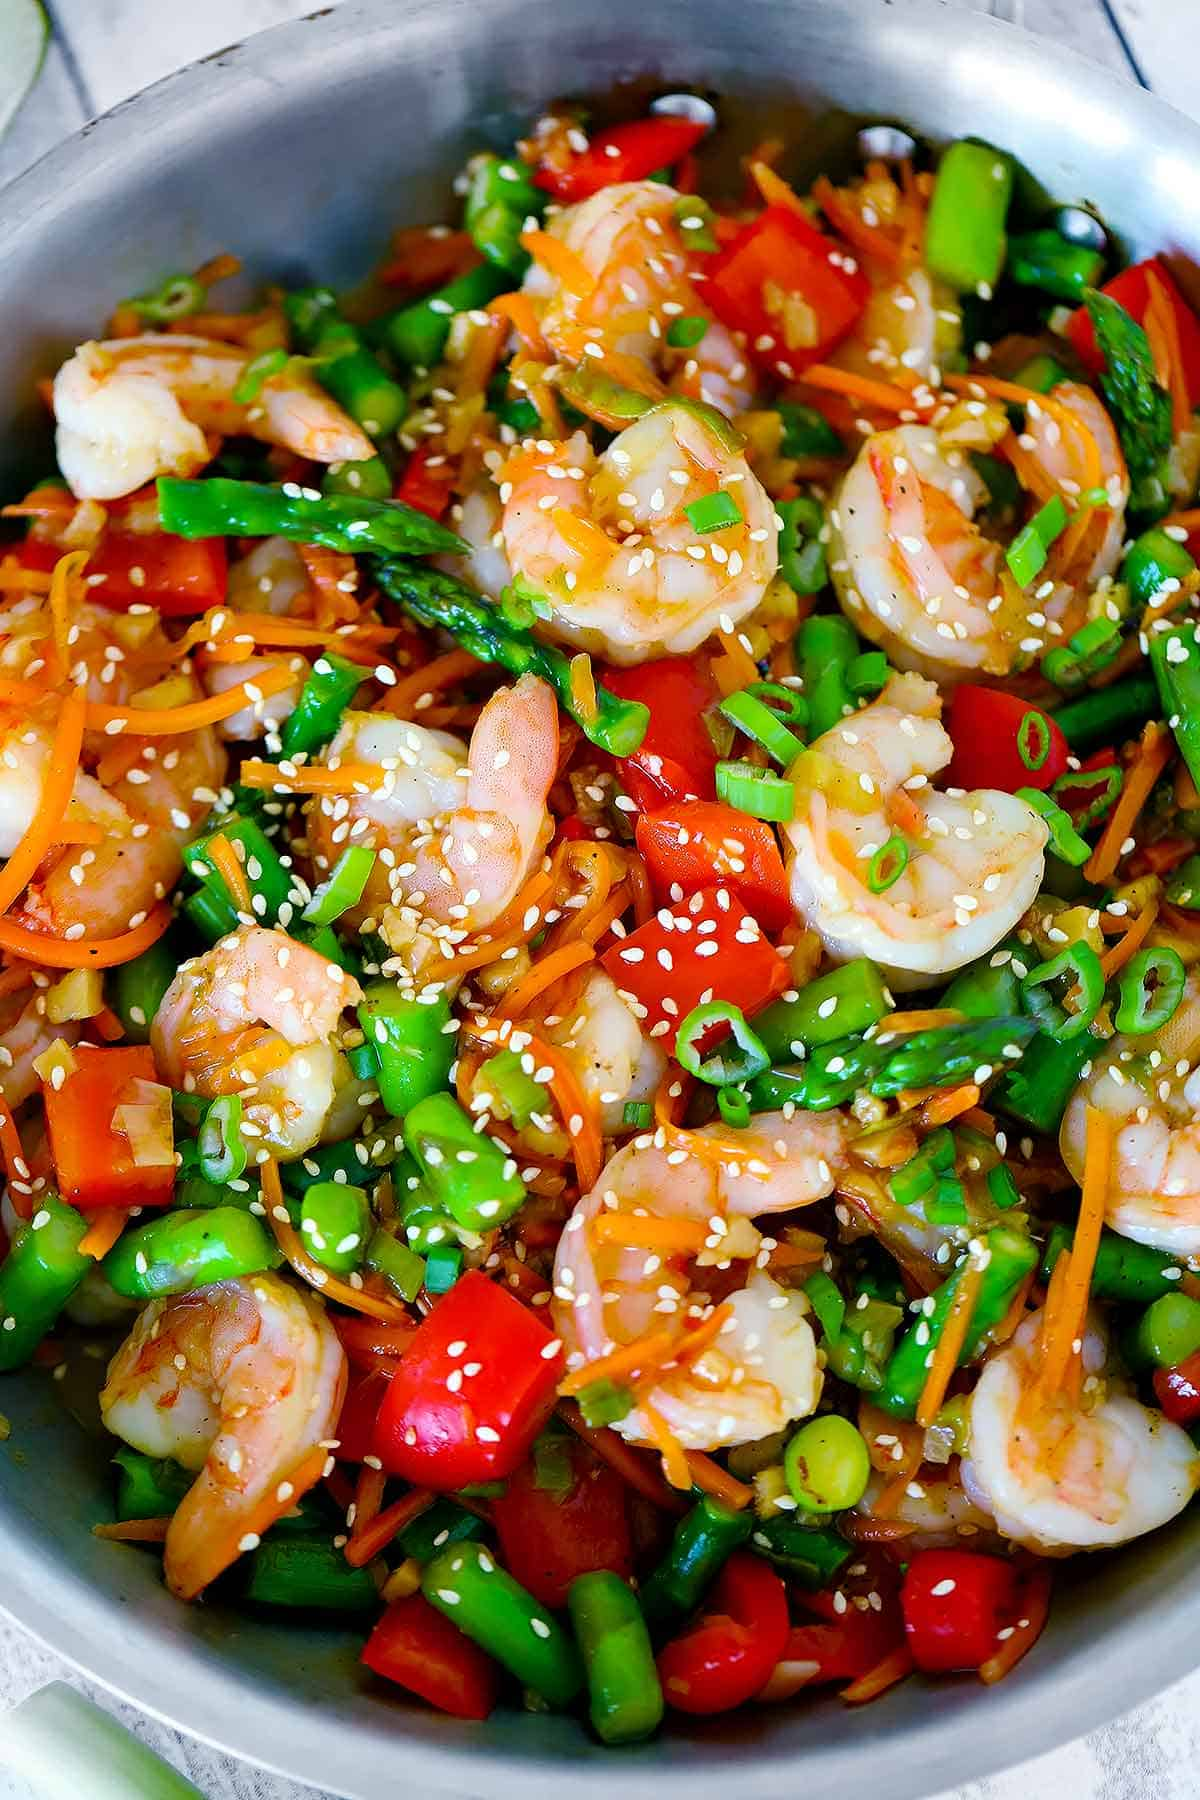 Overhead photo of a skillet with shrimp stir fry, peppers, and asparagus in it garnished with sesame seeds.